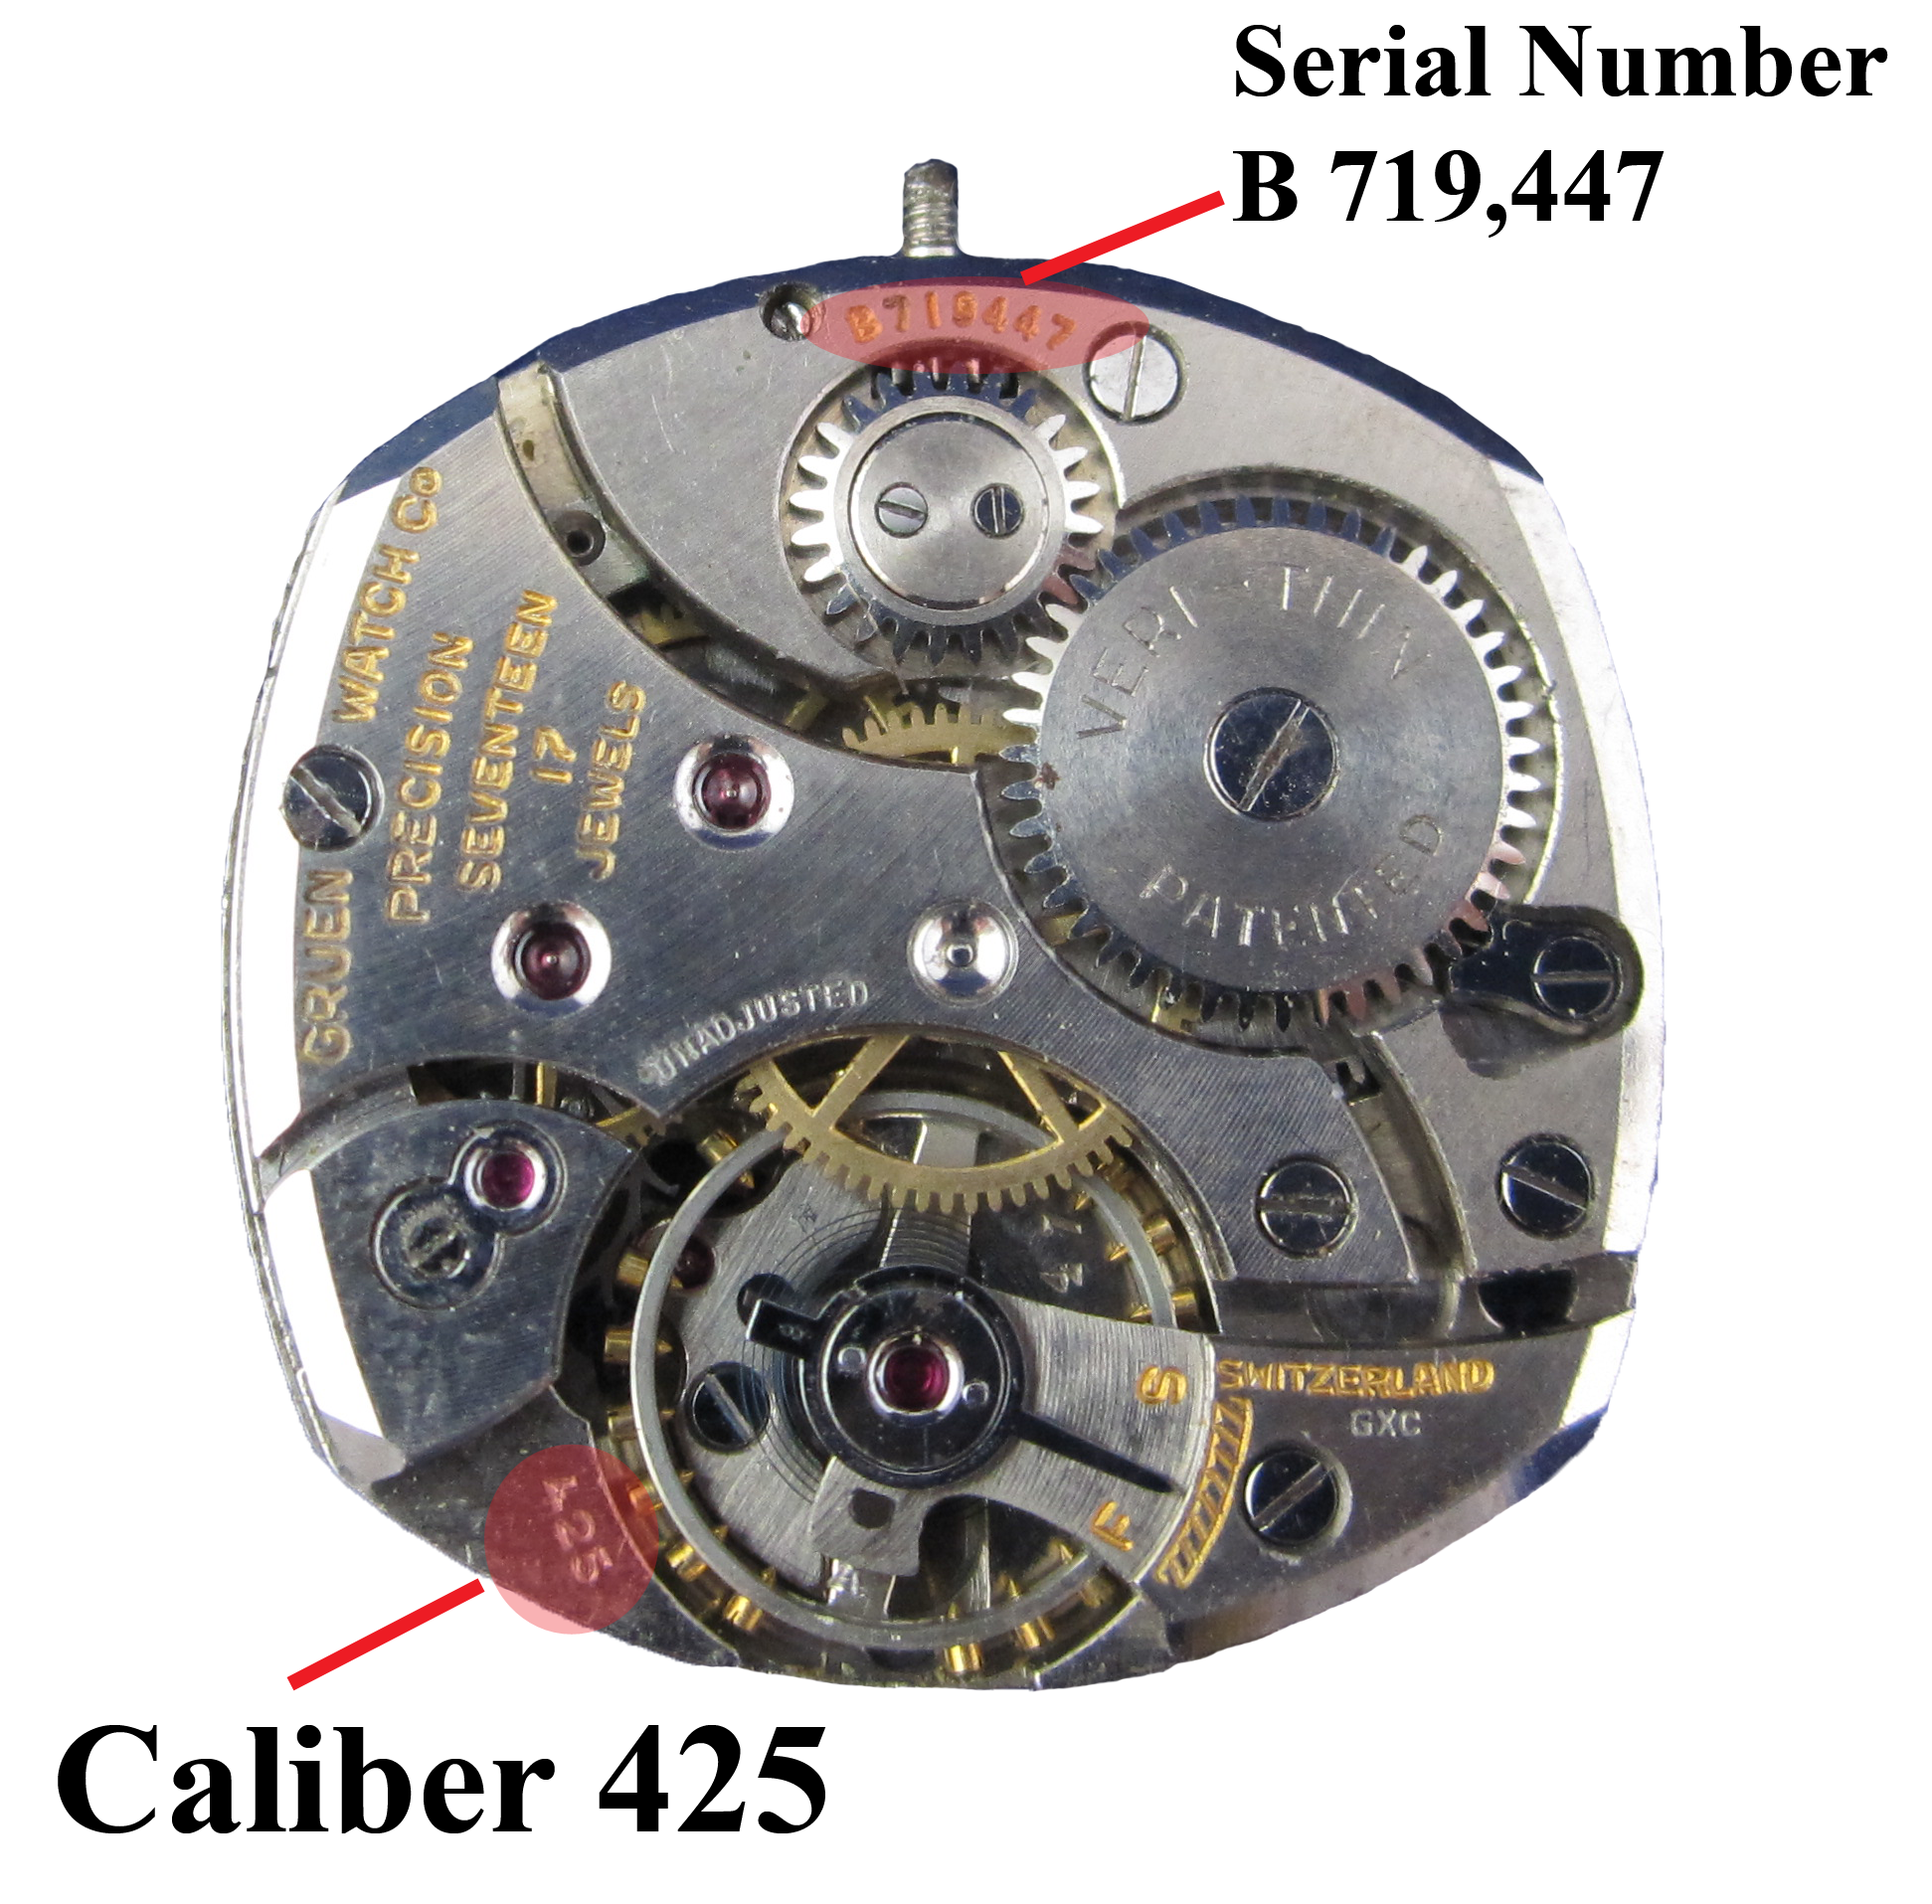 Location of serial number on Gruen Watch movement